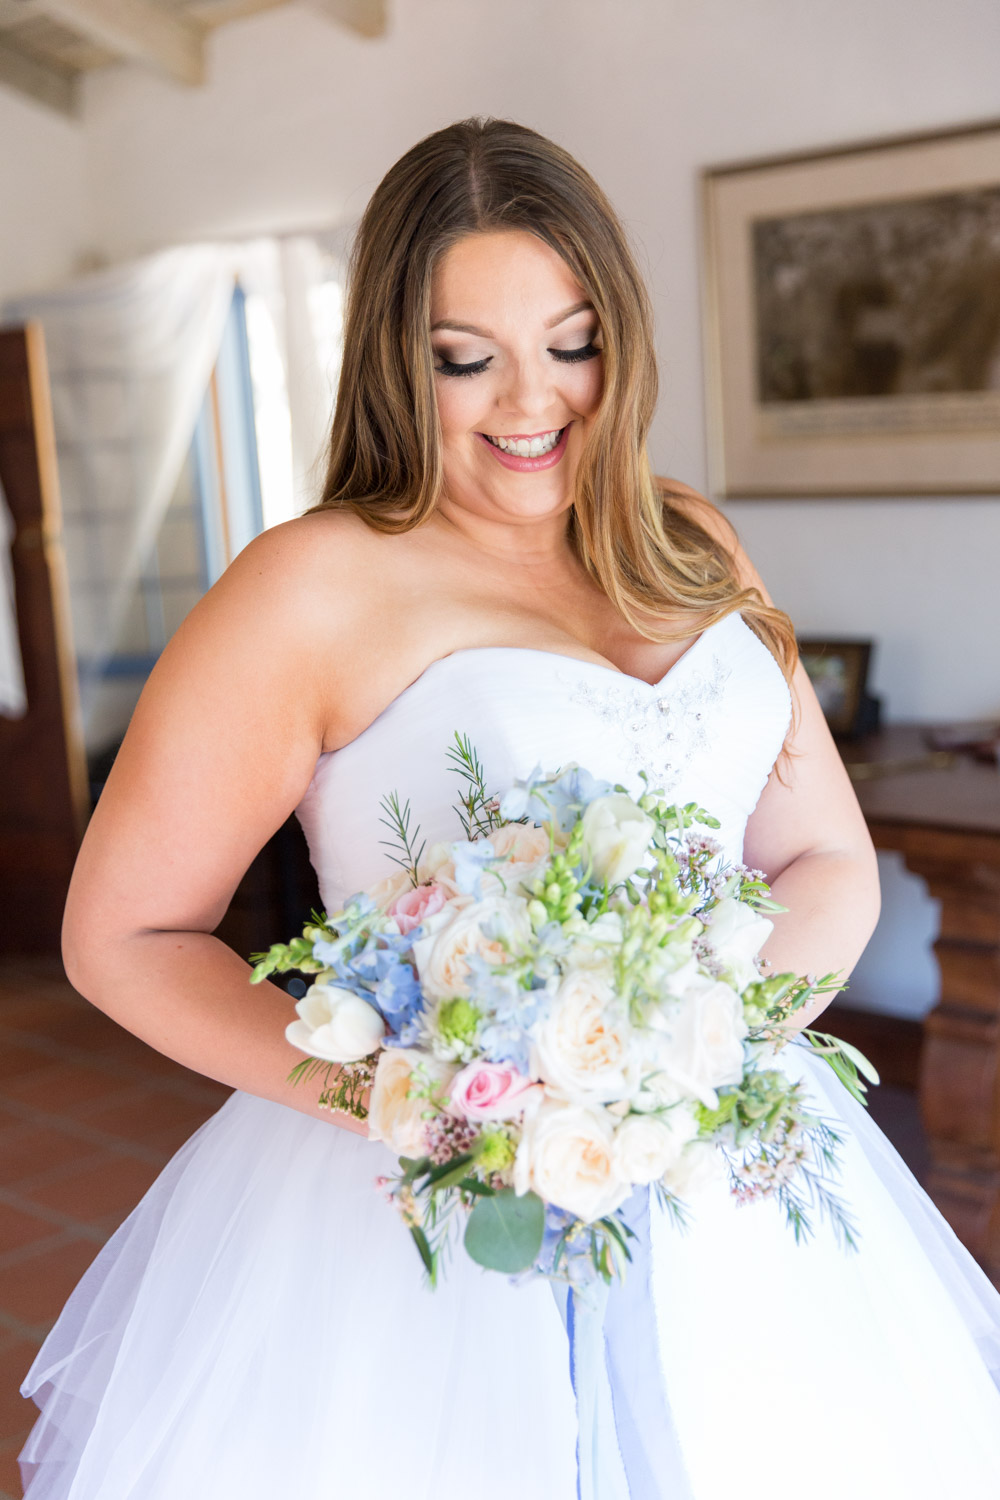 San Diego wedding photographer takes beautiful bridal portrait of a bride at Leo Carrillo